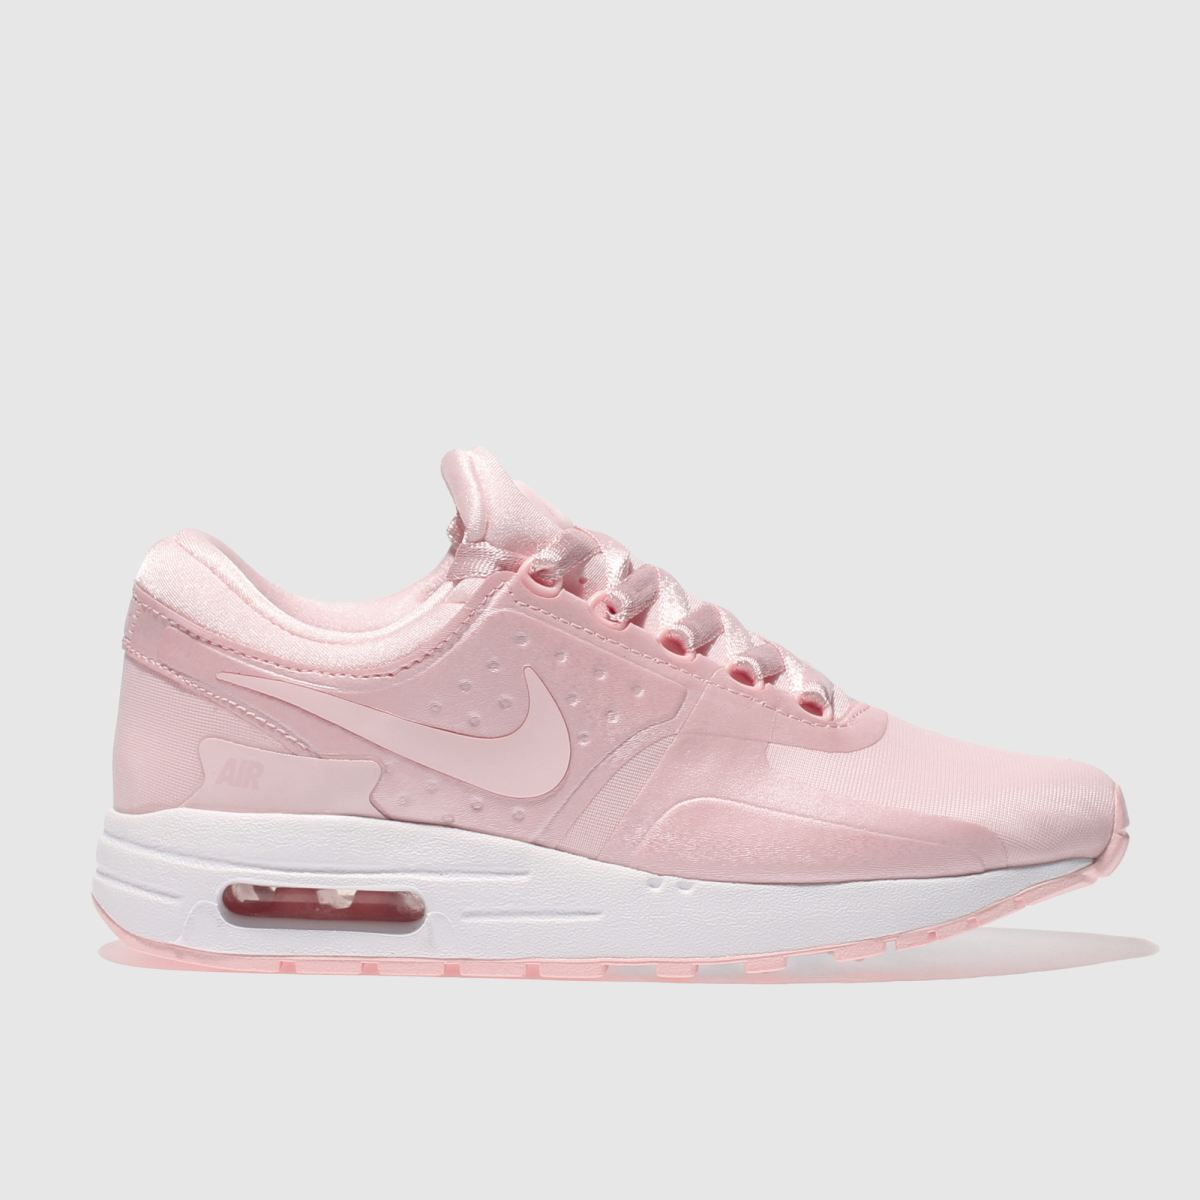 nike pale pink air max zero Girls Youth Trainers